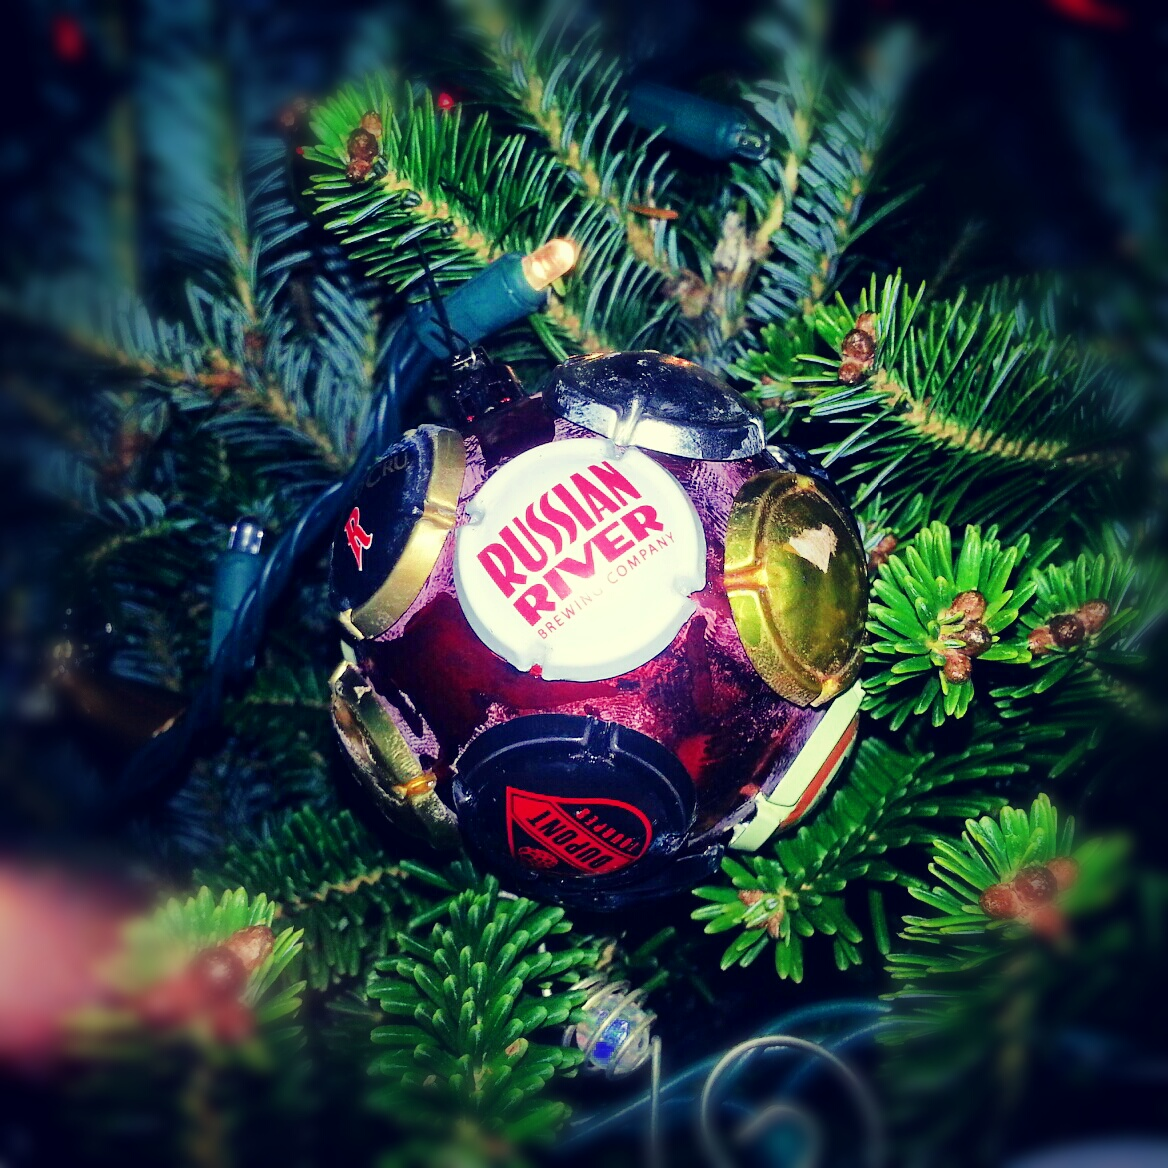 how to make your own custom beer nerd christmas ornament - Nerdy Christmas Ornaments